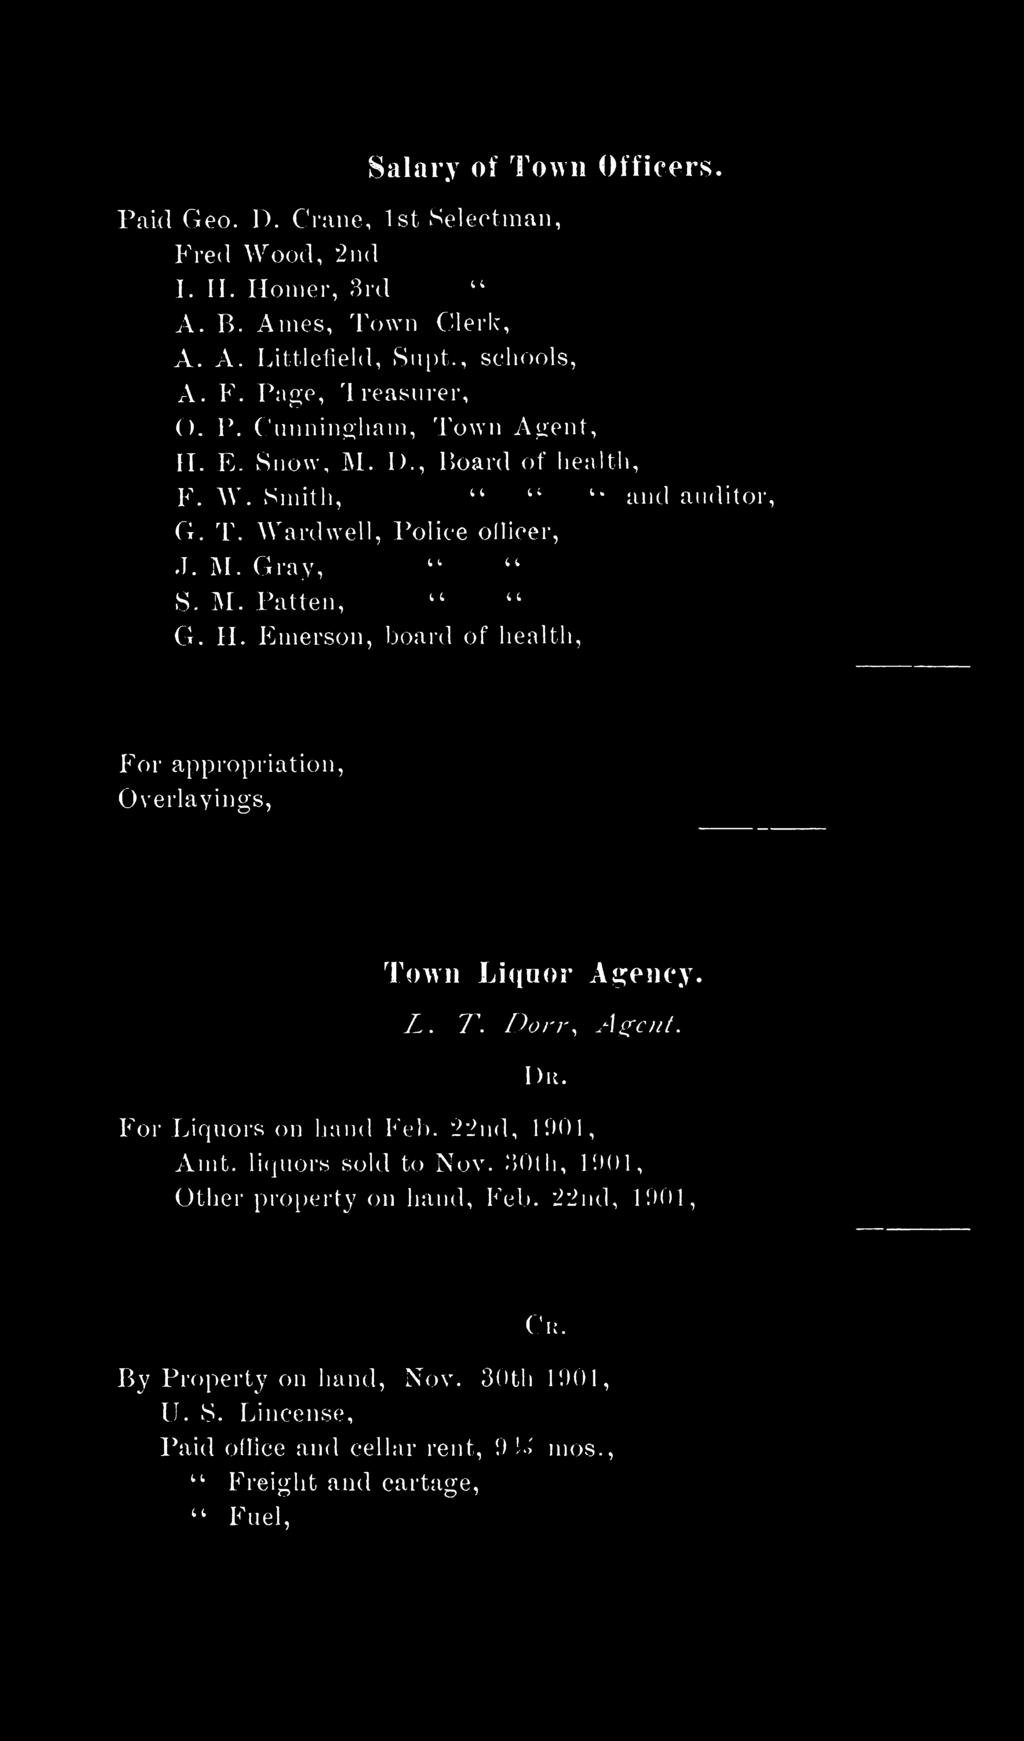 E inerson, board of health, For appropriation, Overlayings, Town Liquor Agency. L. T. Dorr, Agent. I ) 11. For Liquors on hand Feb. 22nd, 1901, Amt. liquors sold to Nov.